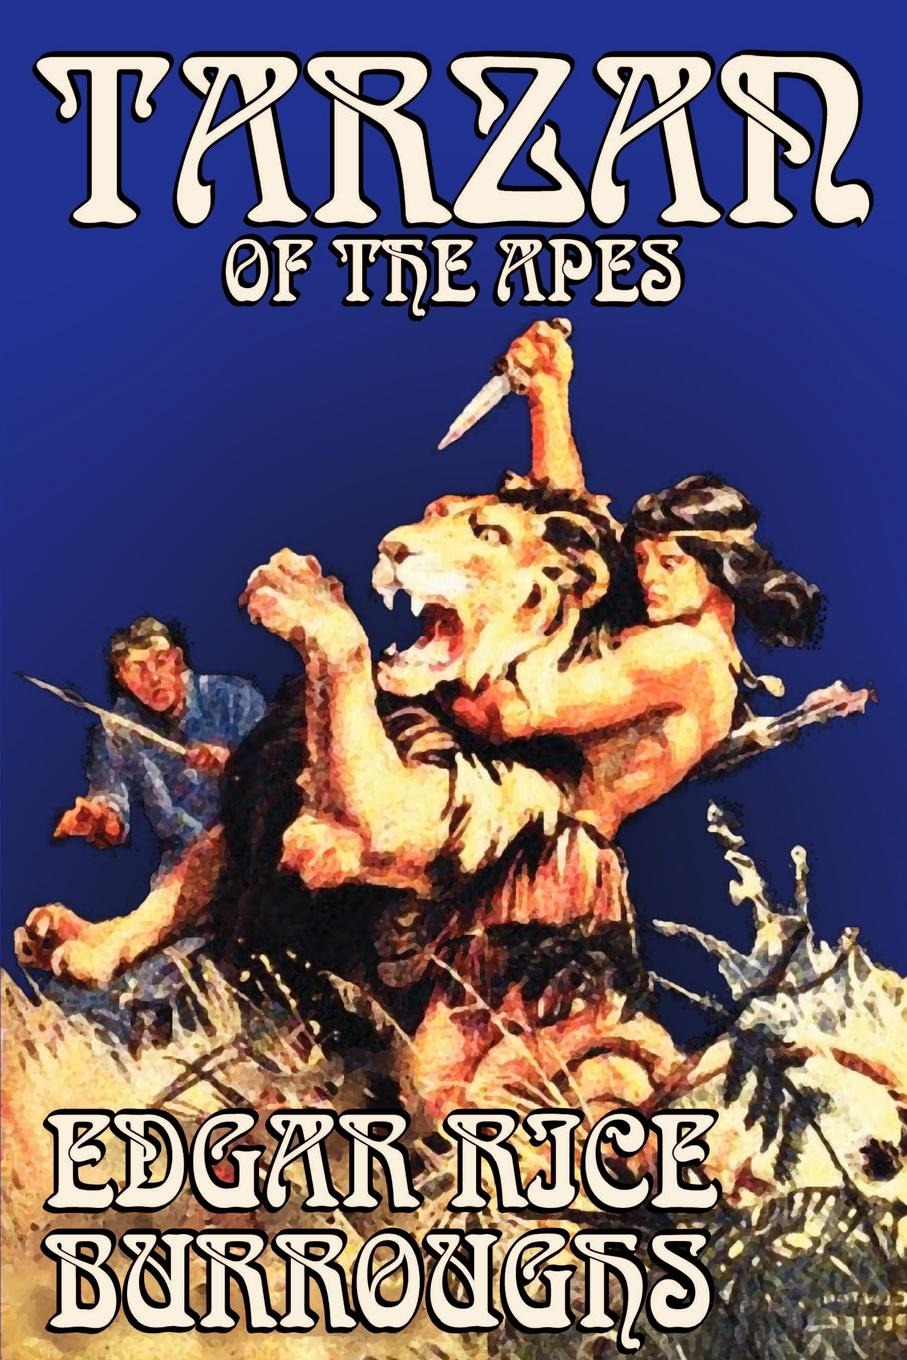 Edgar Rice Burroughs Tarzan of the Apes by Edgar Rice Burroughs, Fiction, Classics, Action & Adventure edgar rice burroughs the war chief